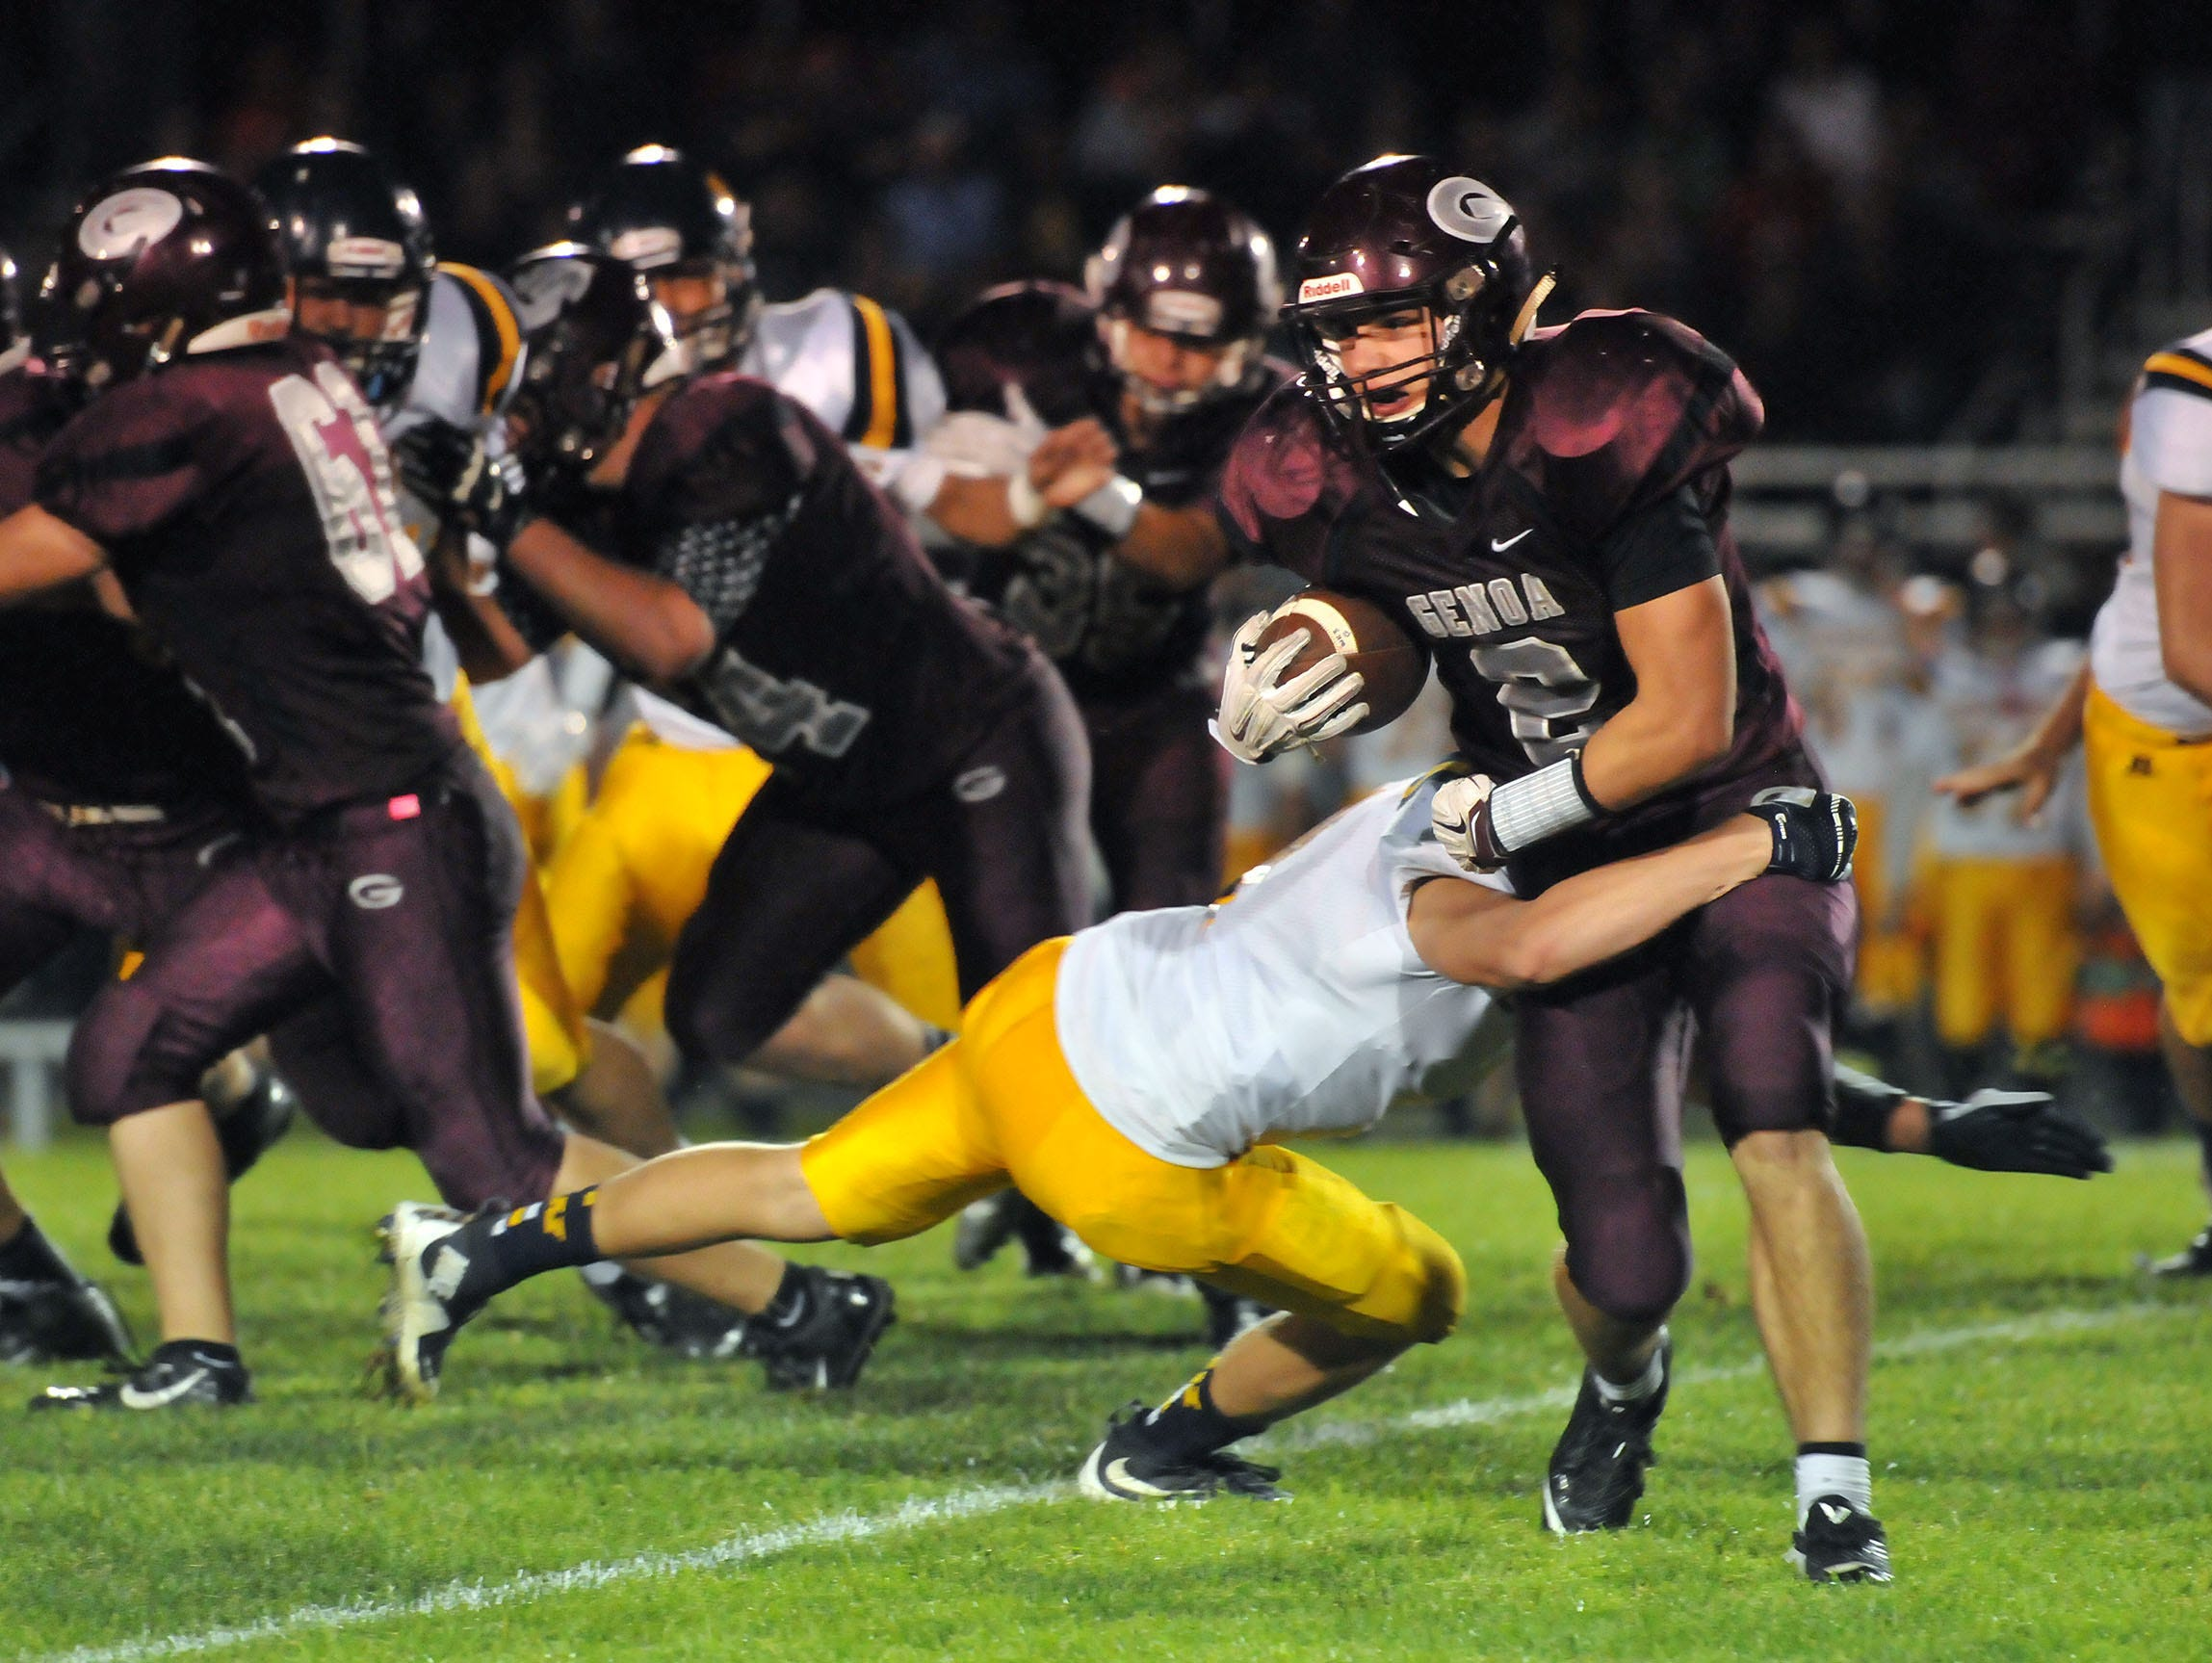 Genoa's Matt Bradfield carries the ball during the Comets home game versus Woodmore on Friday night.